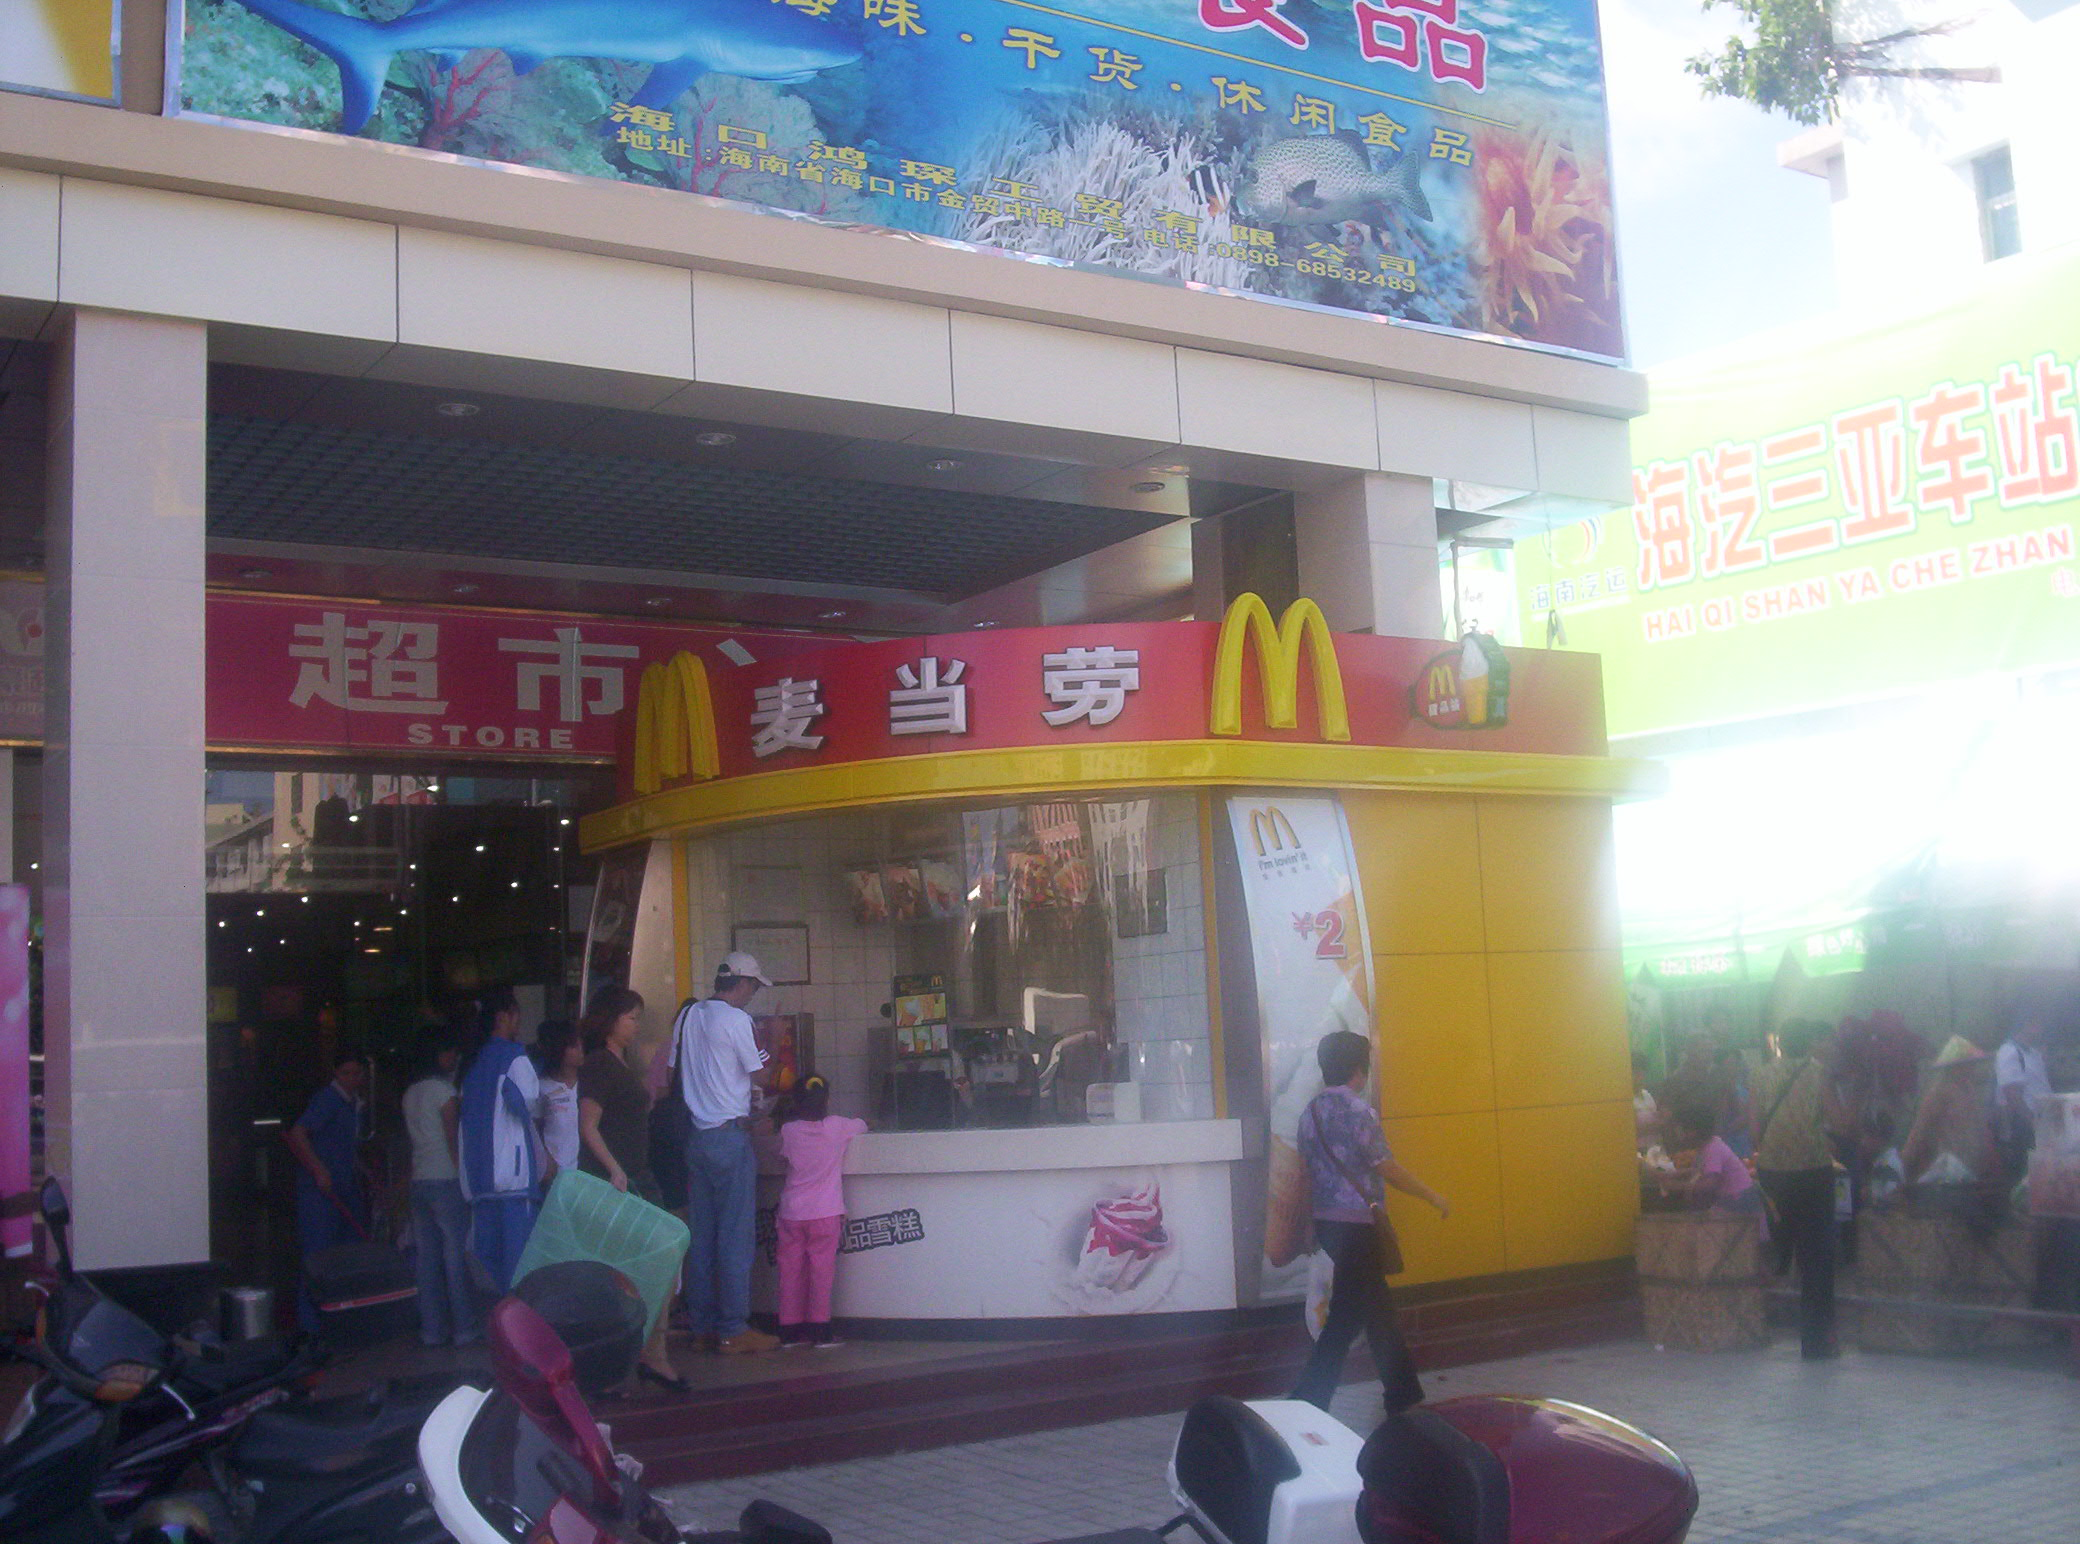 Fast food in China